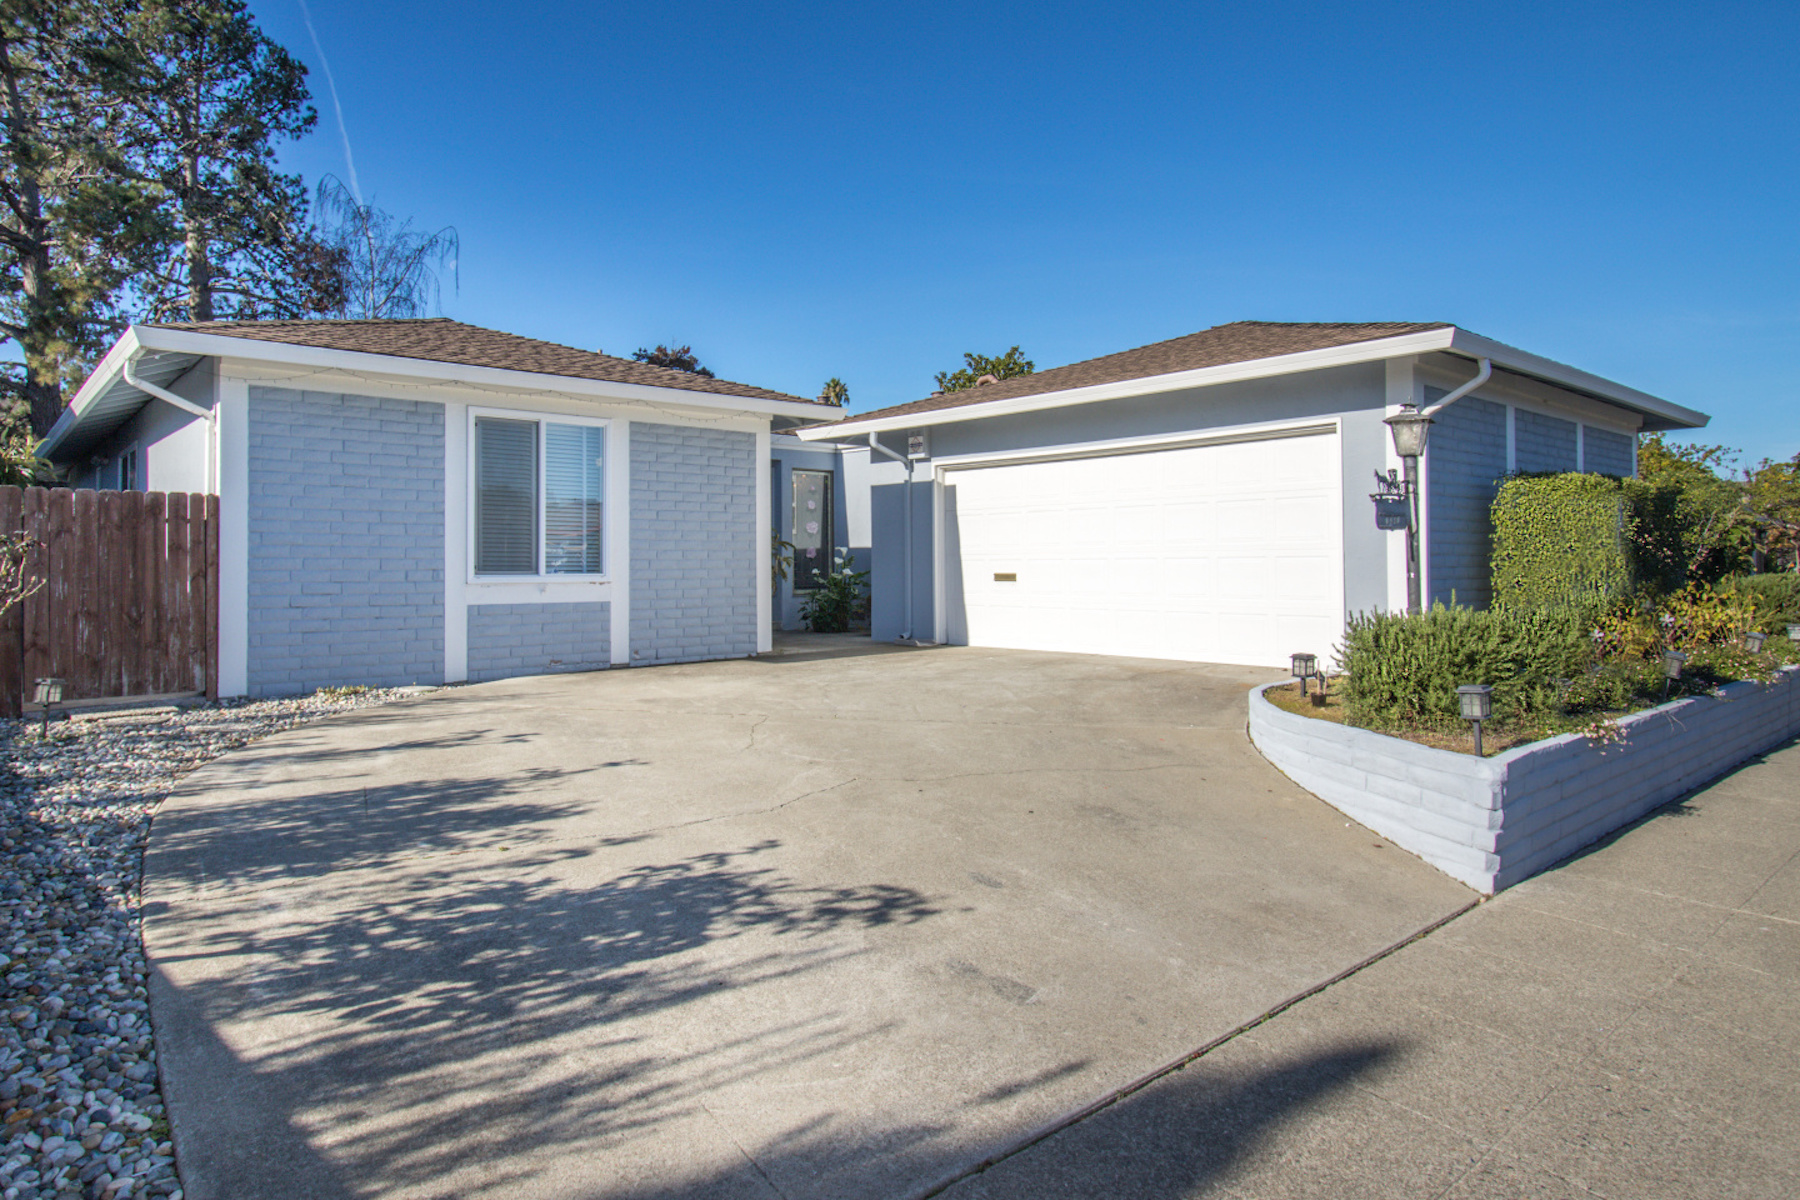 Single Family Home for Active at Lovely Ranch-Style Home in Foster City 1241 Ribbon Street Foster City, California 94404 United States